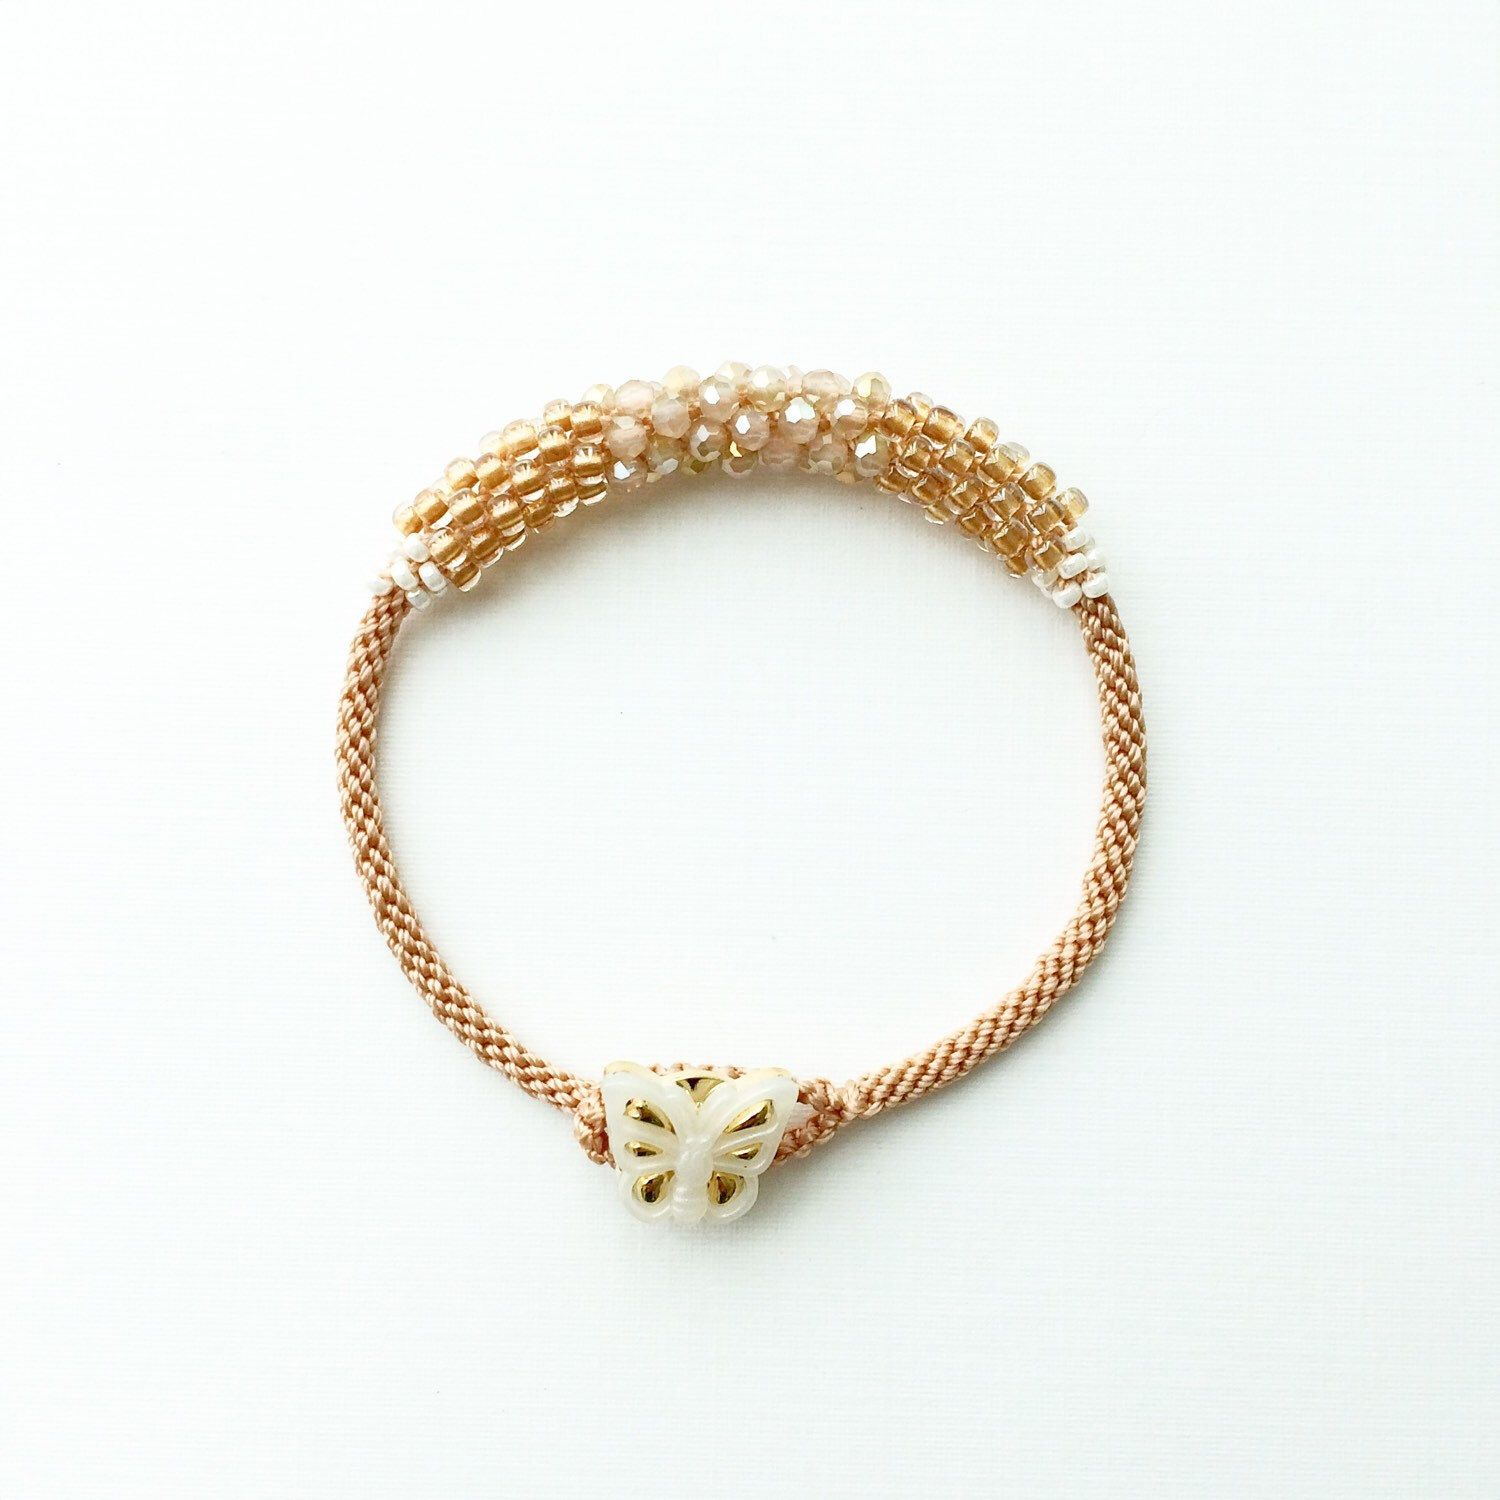 Nude Kumihimo Bracelet with Butterfly Button  by PetitKnot on Etsy https://www.etsy.com/listing/220572114/nude-kumihimo-bracelet-with-butterfly